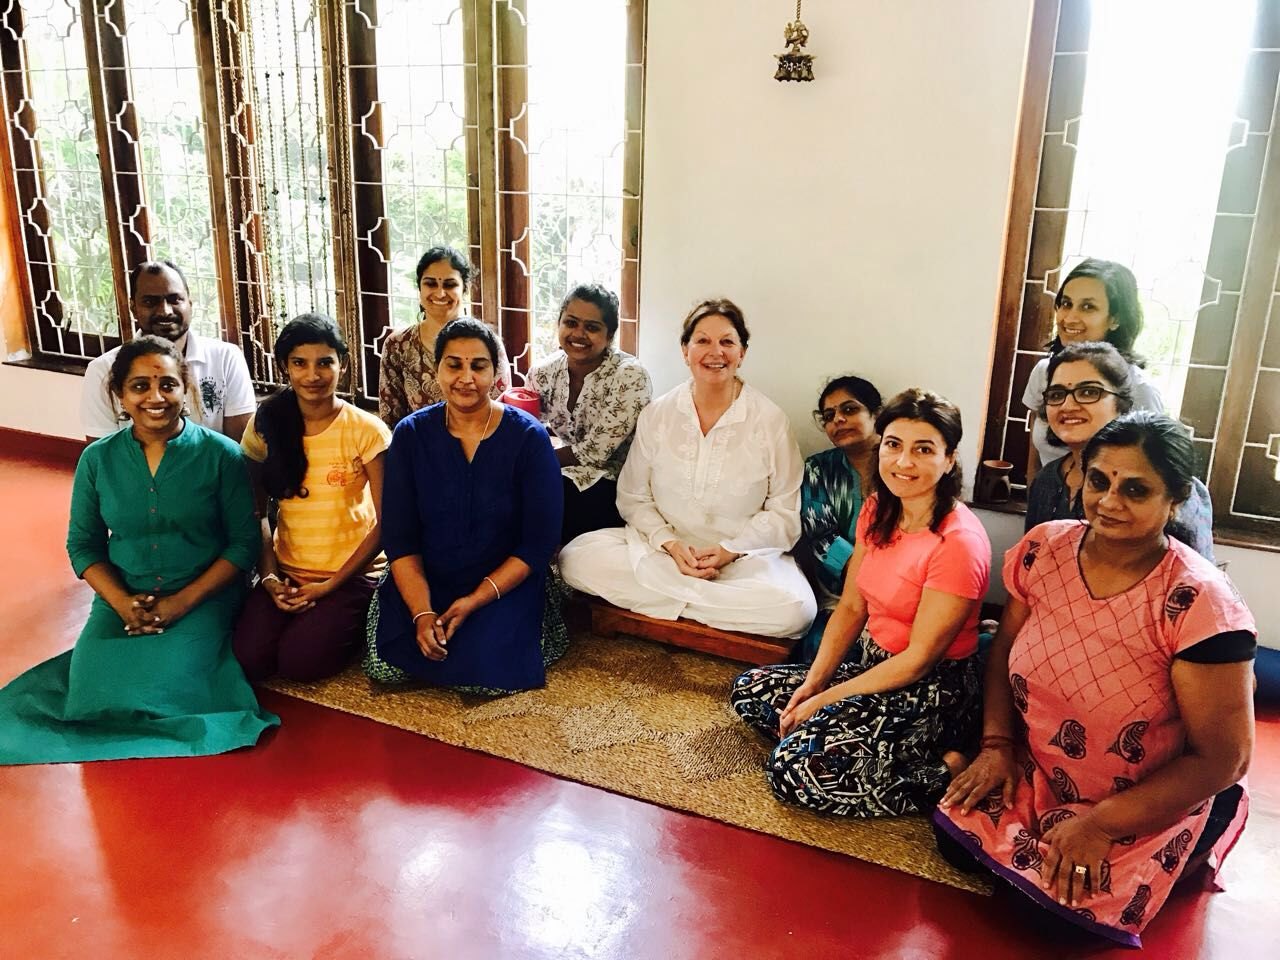 Some of our amazing yoga teachers in Colombo